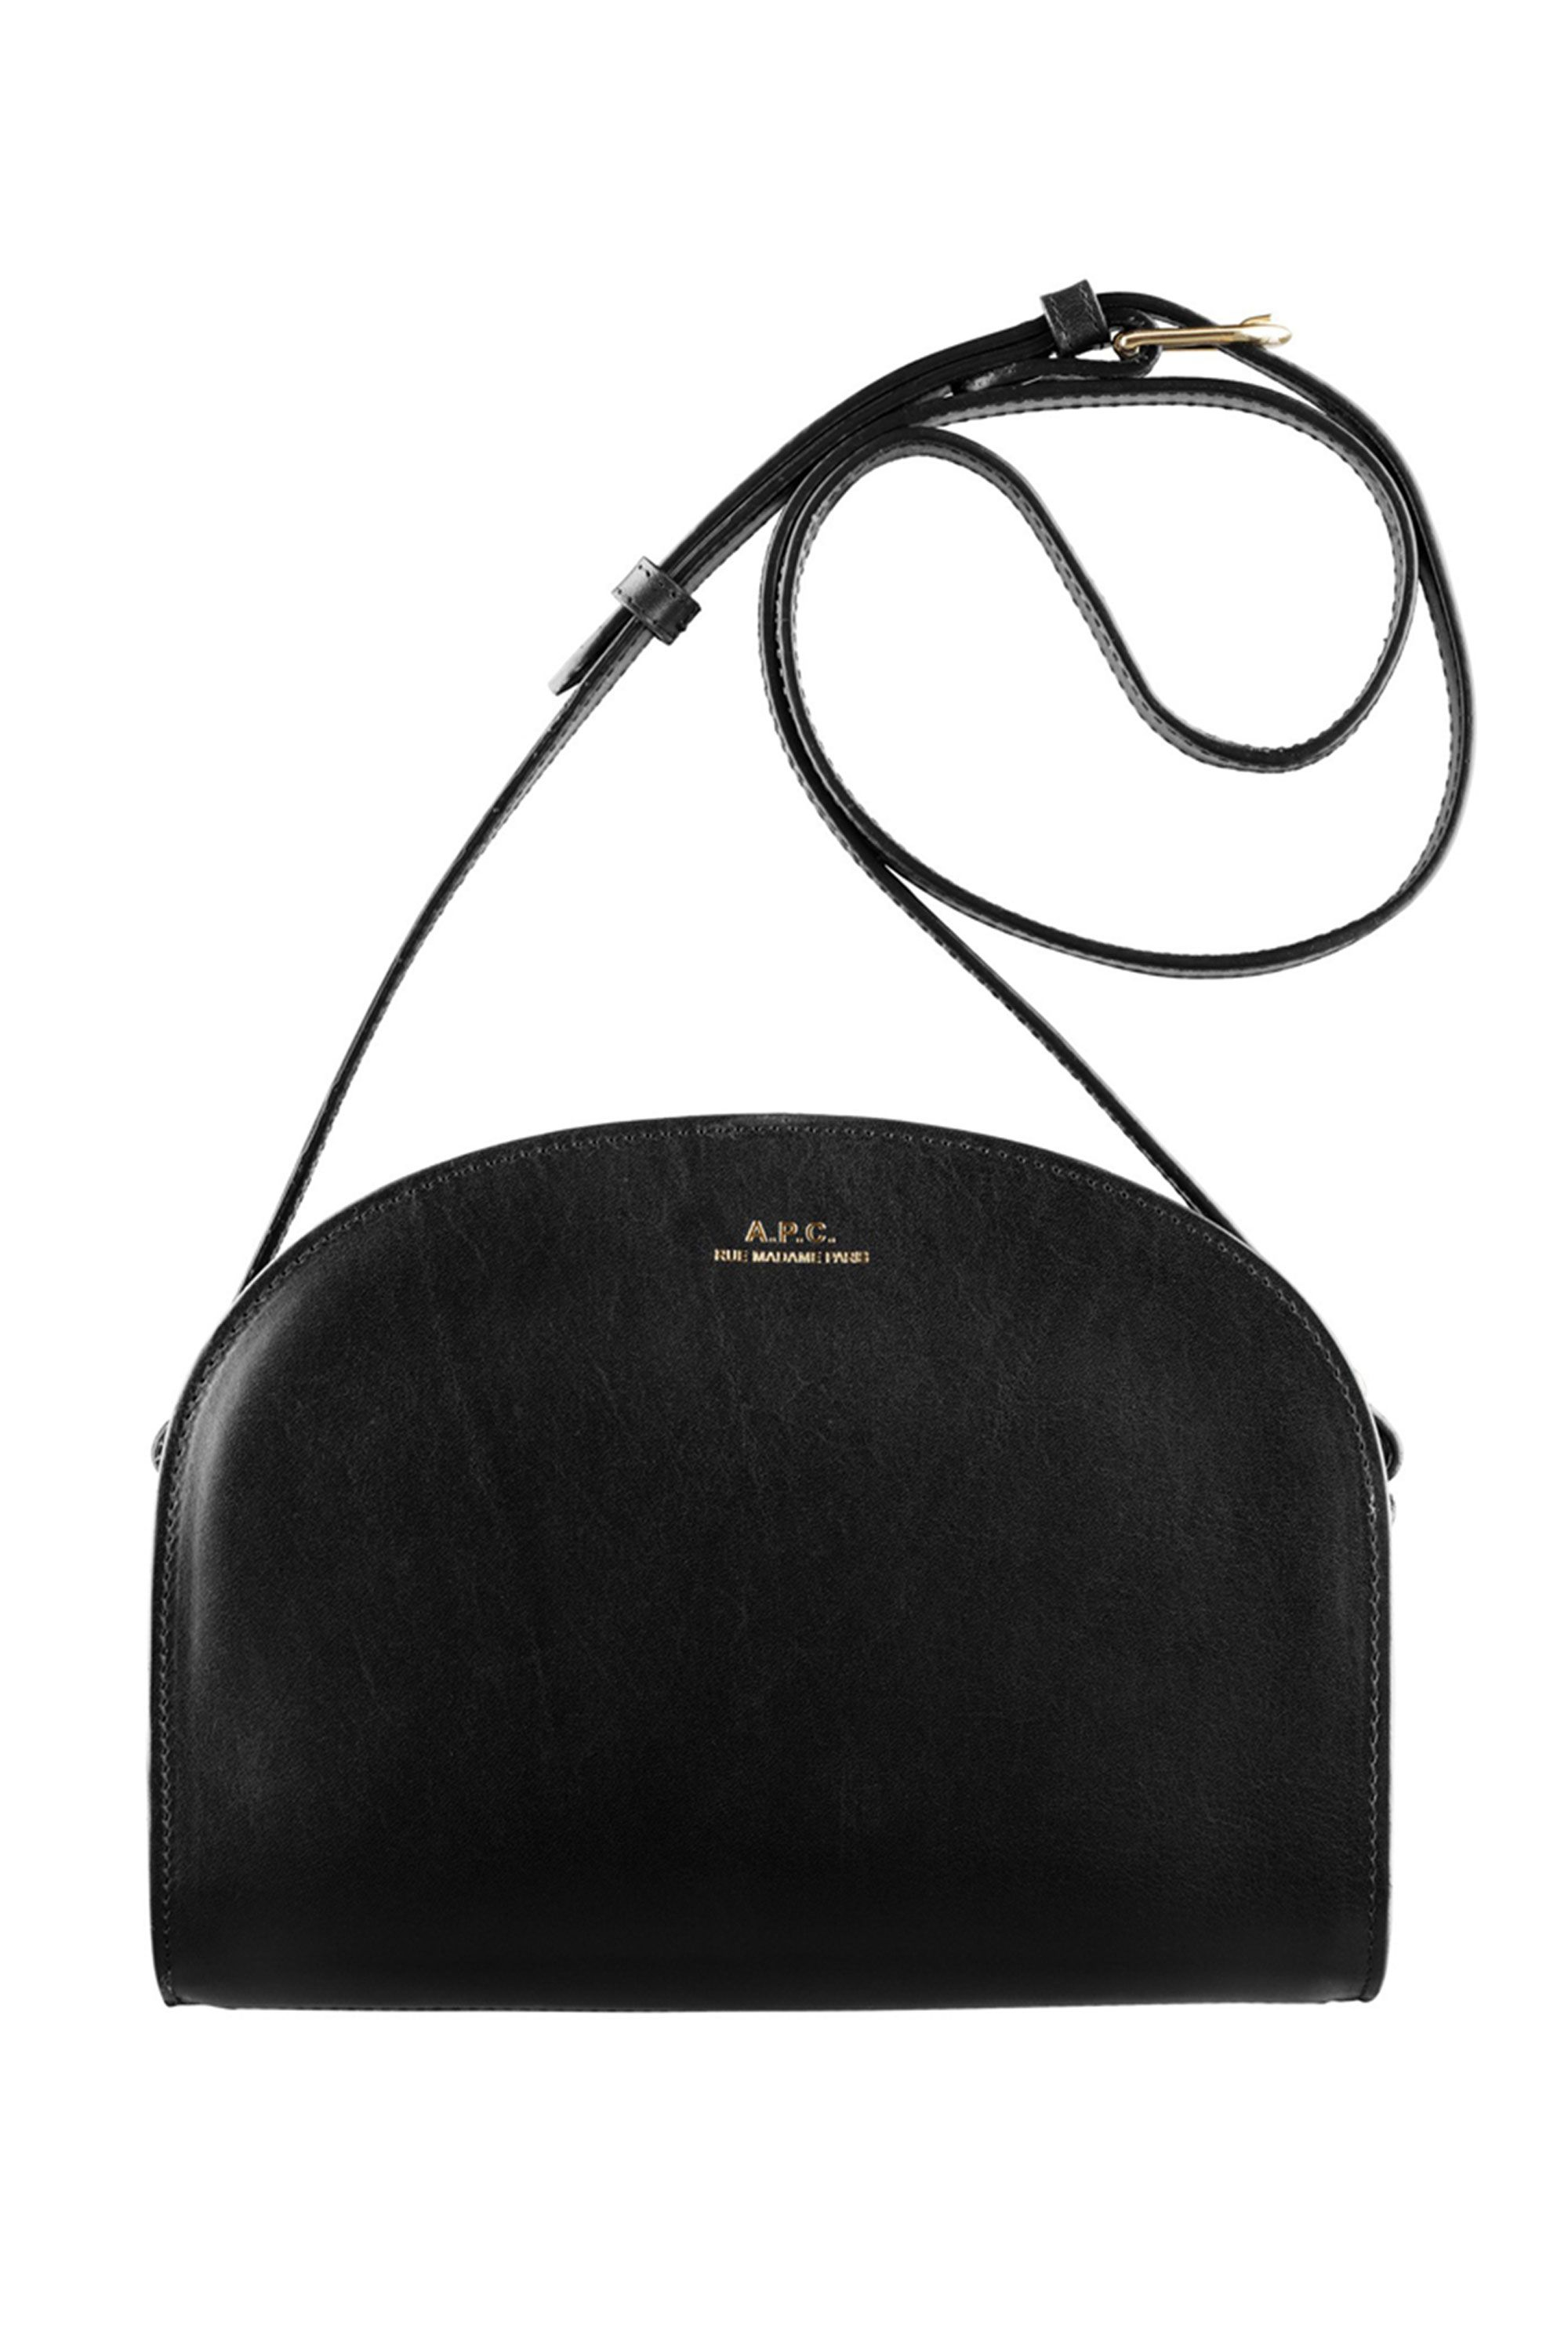 The Search for an Amazing Black Crossbody Bag is Over  896ebbfce023c